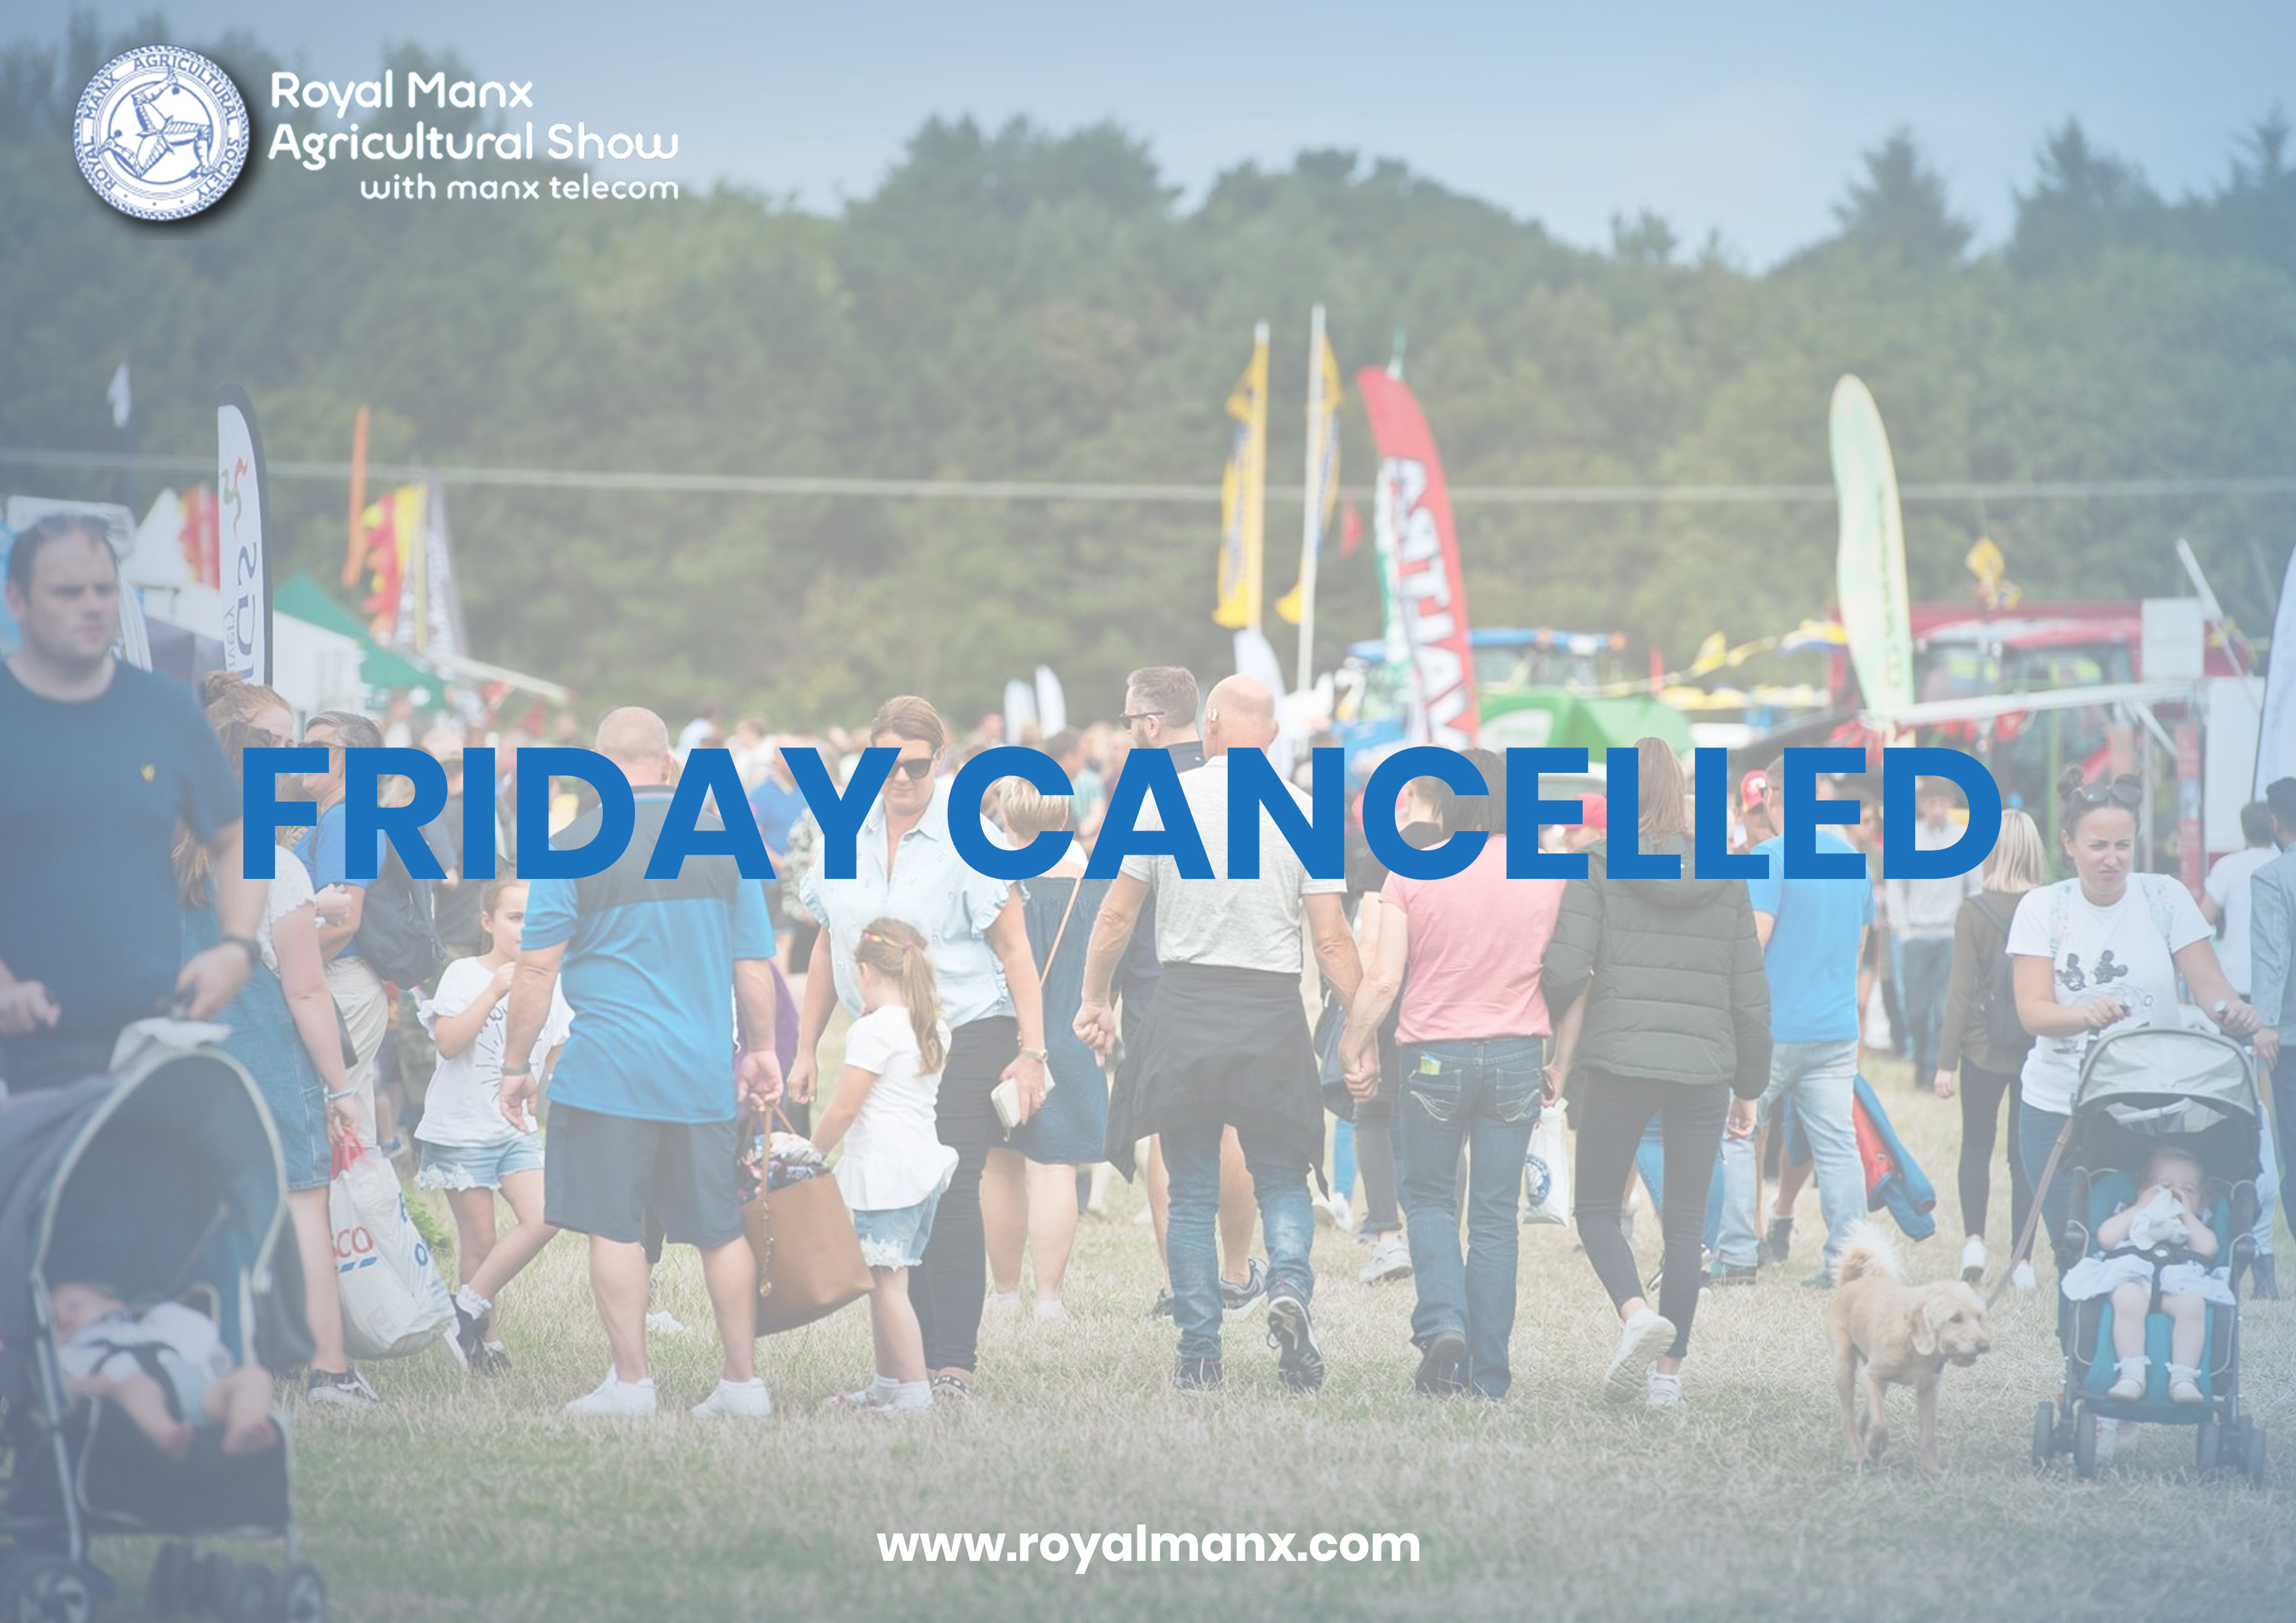 Friday Cancelled